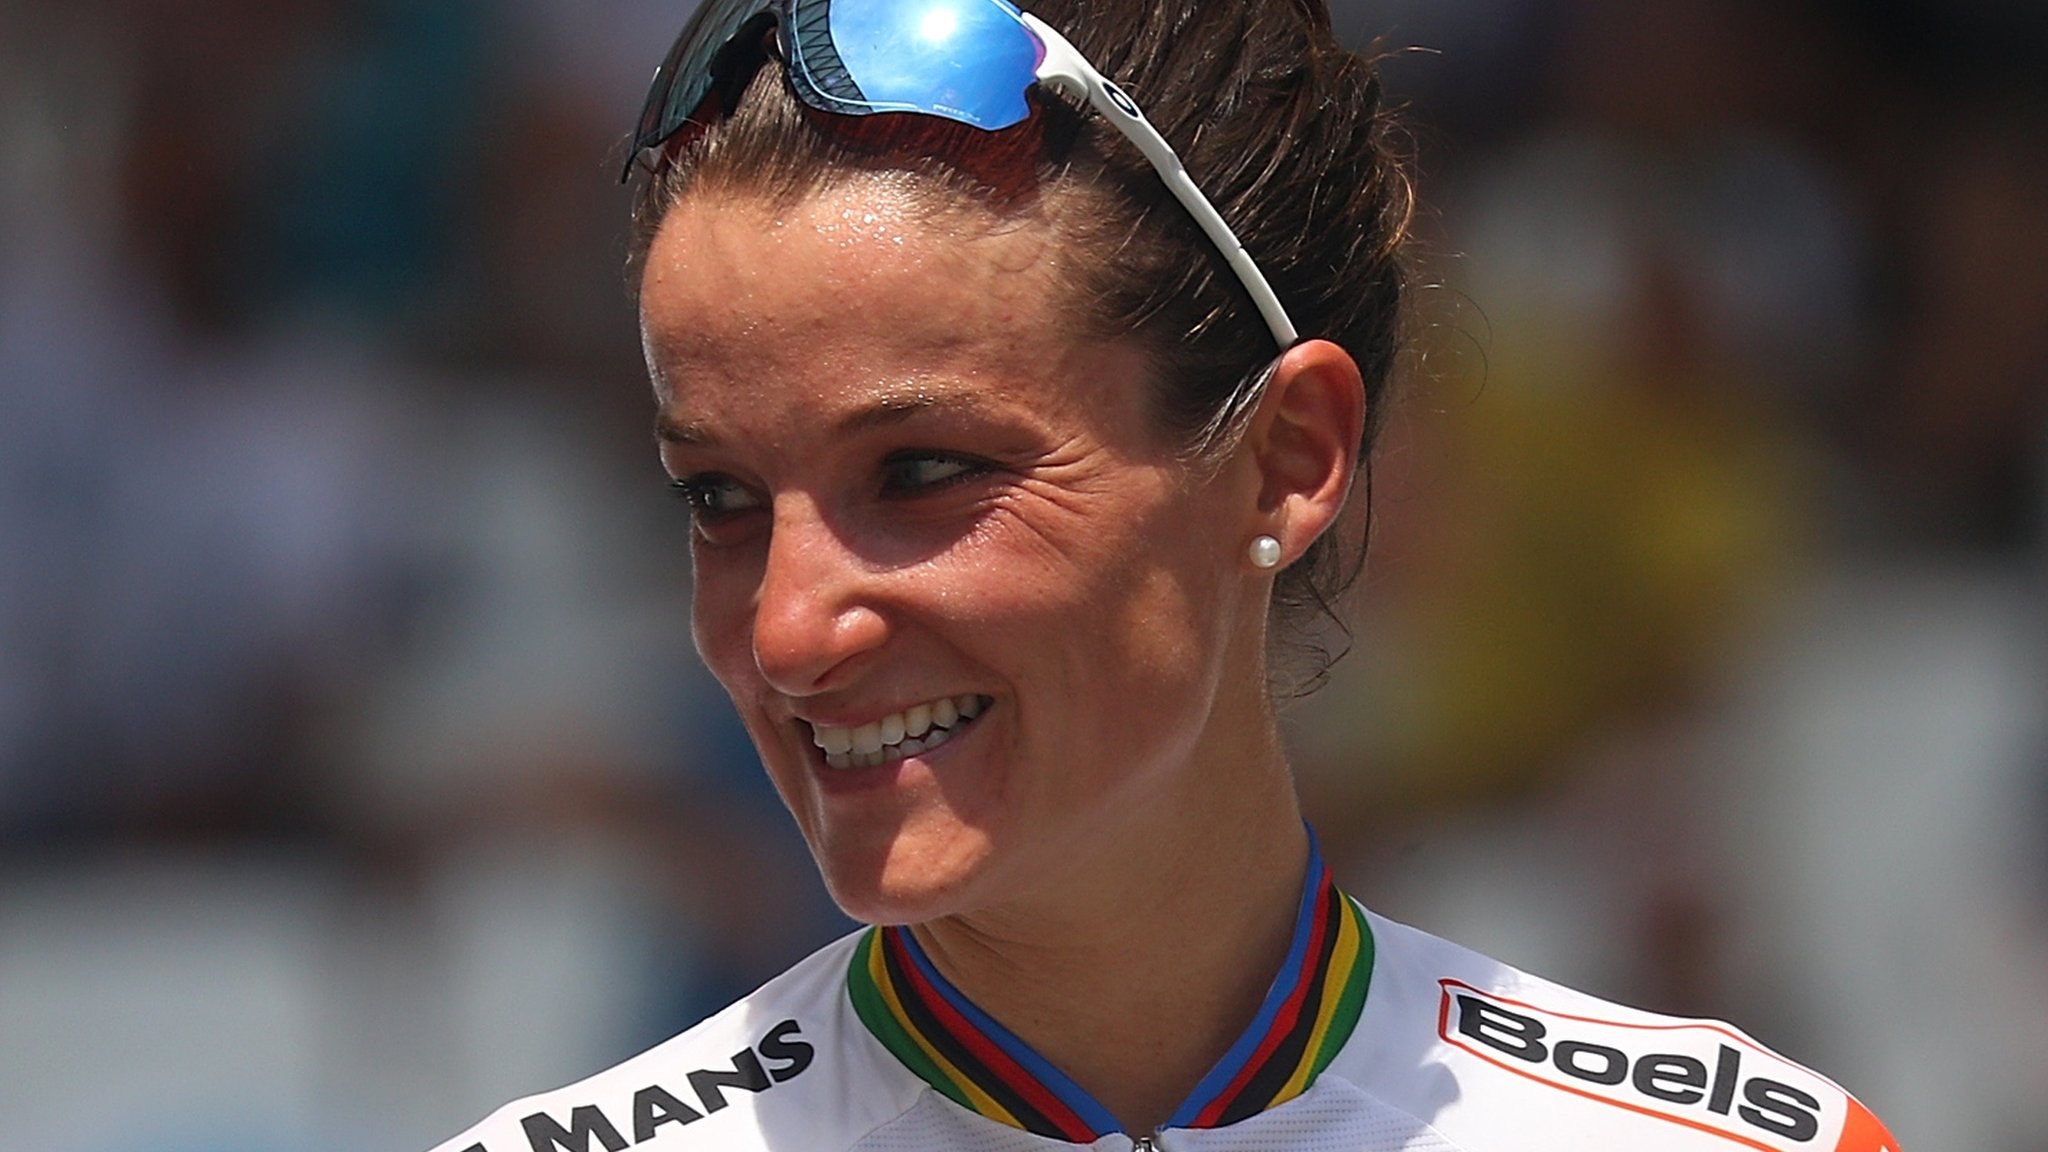 Deignan to return to cycling seven months after daughter's birth